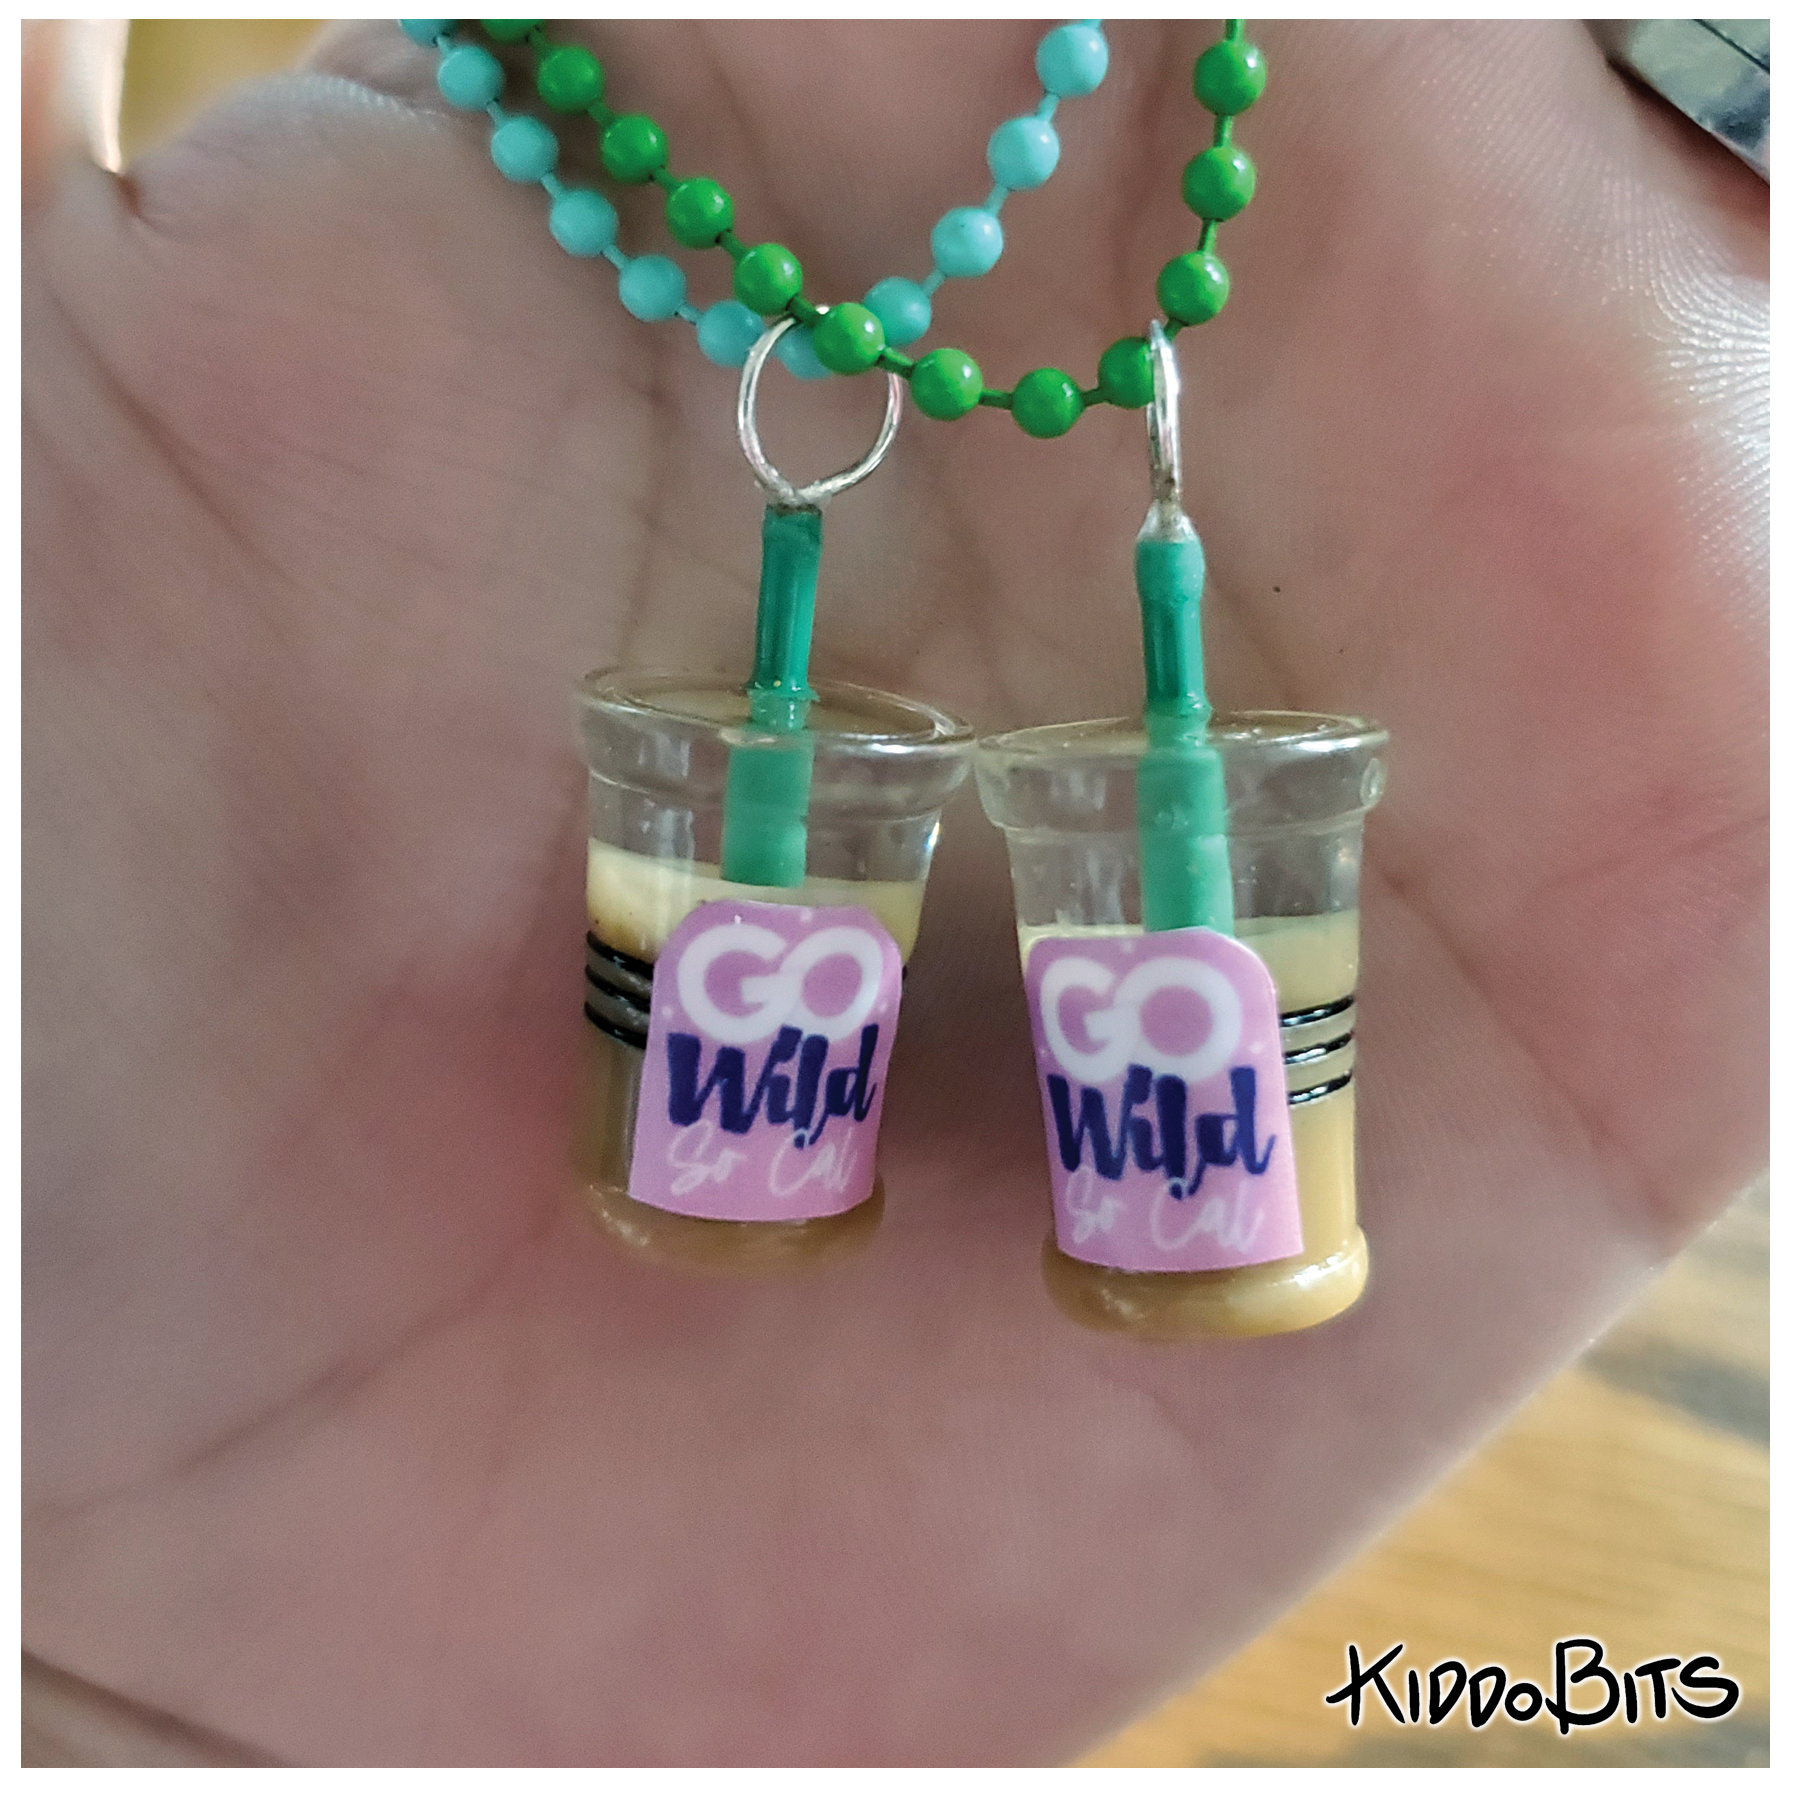 Go Wild Coffee Cup Planner Charm